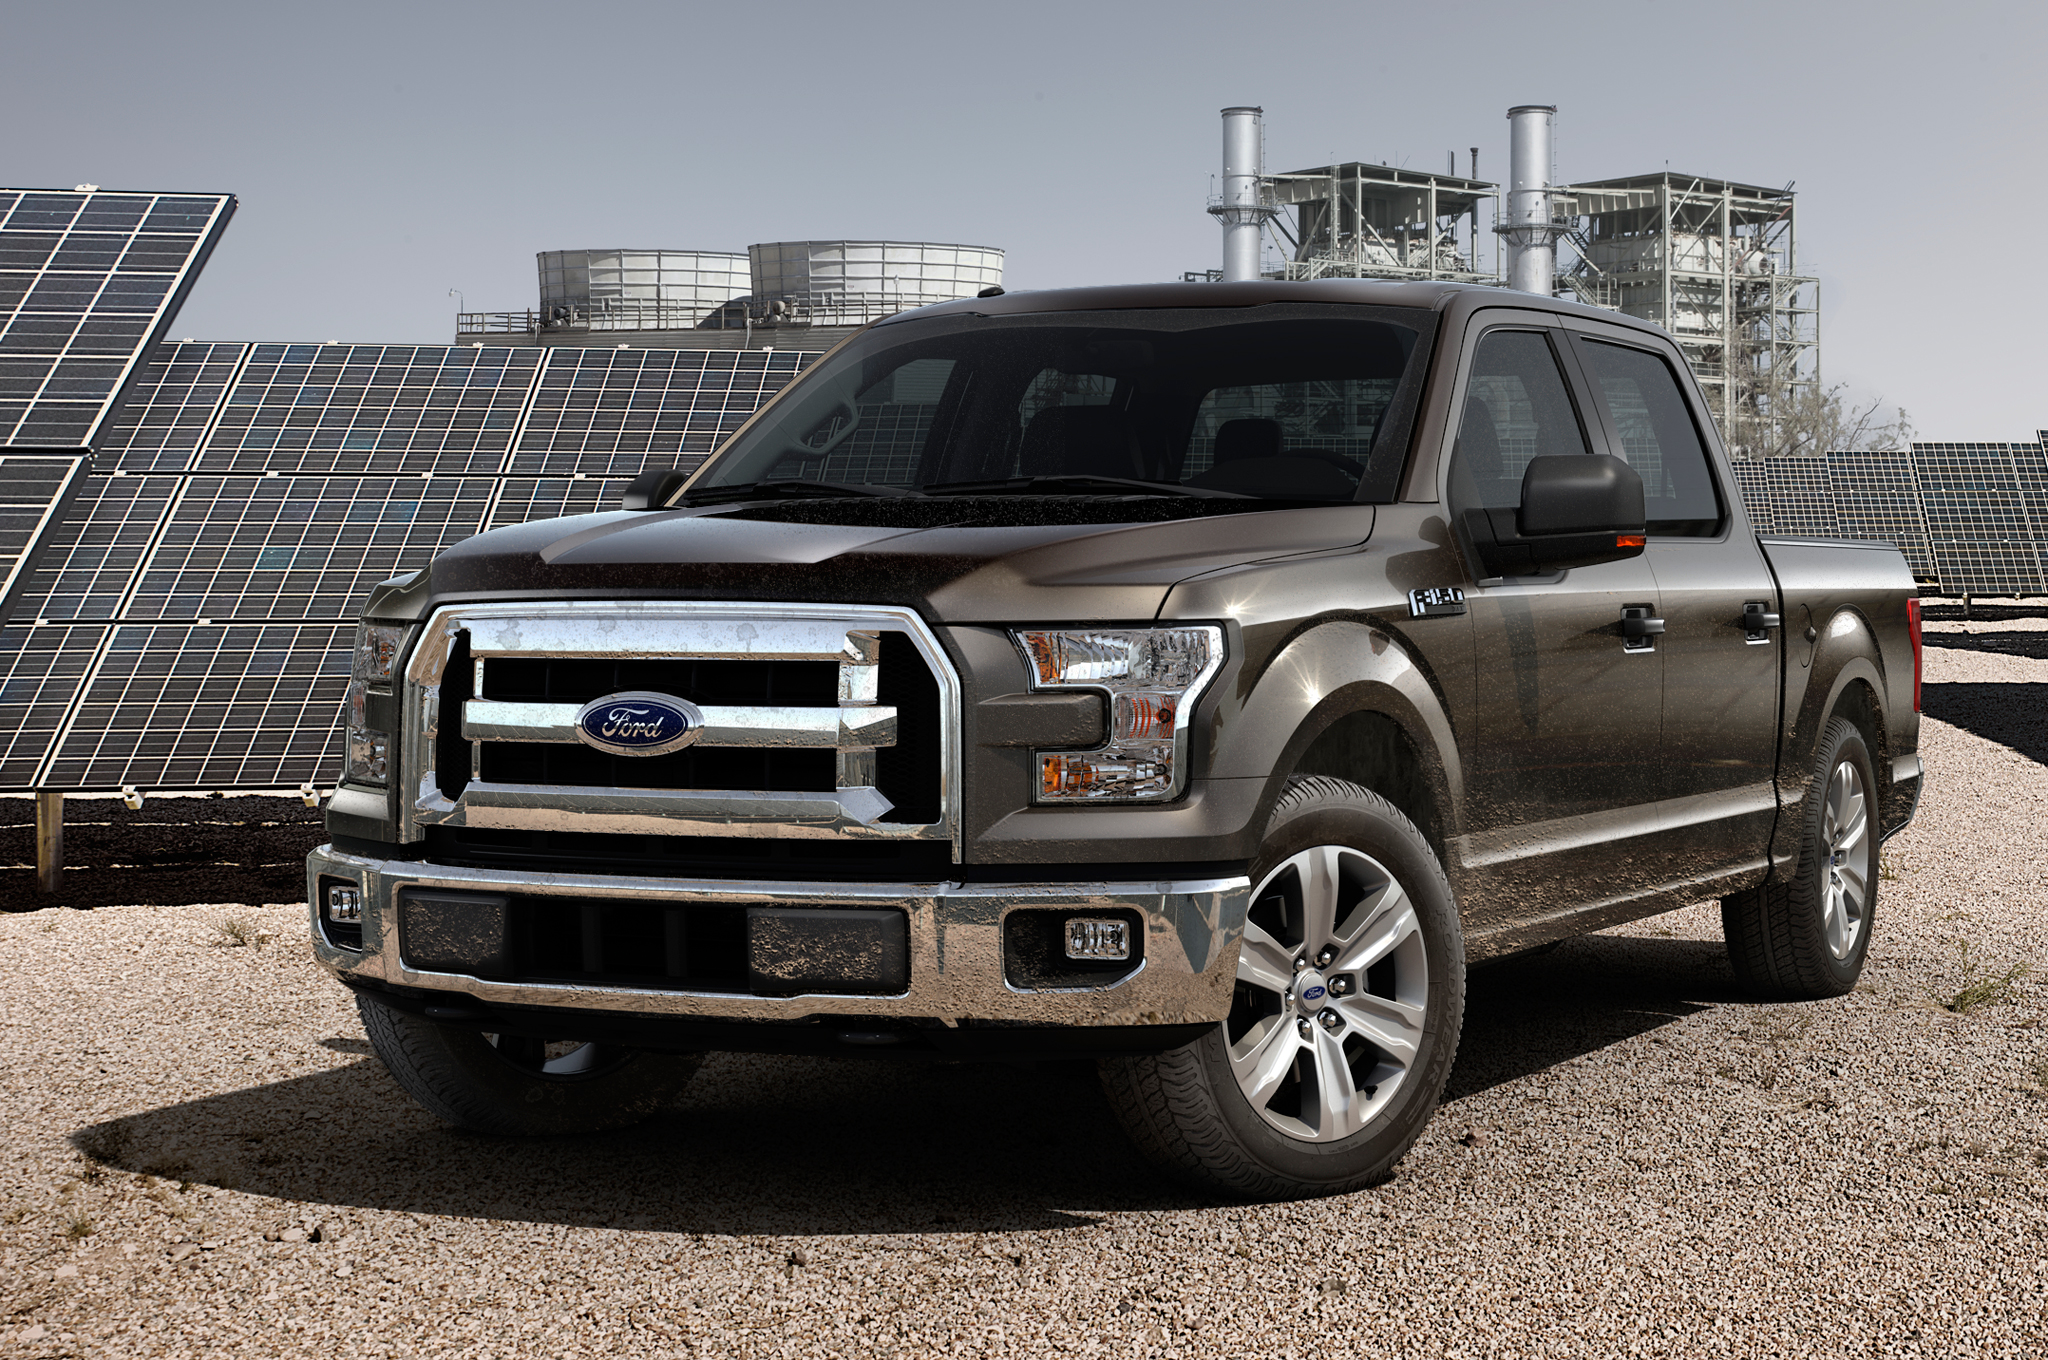 Everything You Need To Know About Leasing A Truck (F-150 SuperCrew From $358 & 8 Things You Should Know Before Leasing A New Car u2014 LEASEHACKR markmcfarlin.com